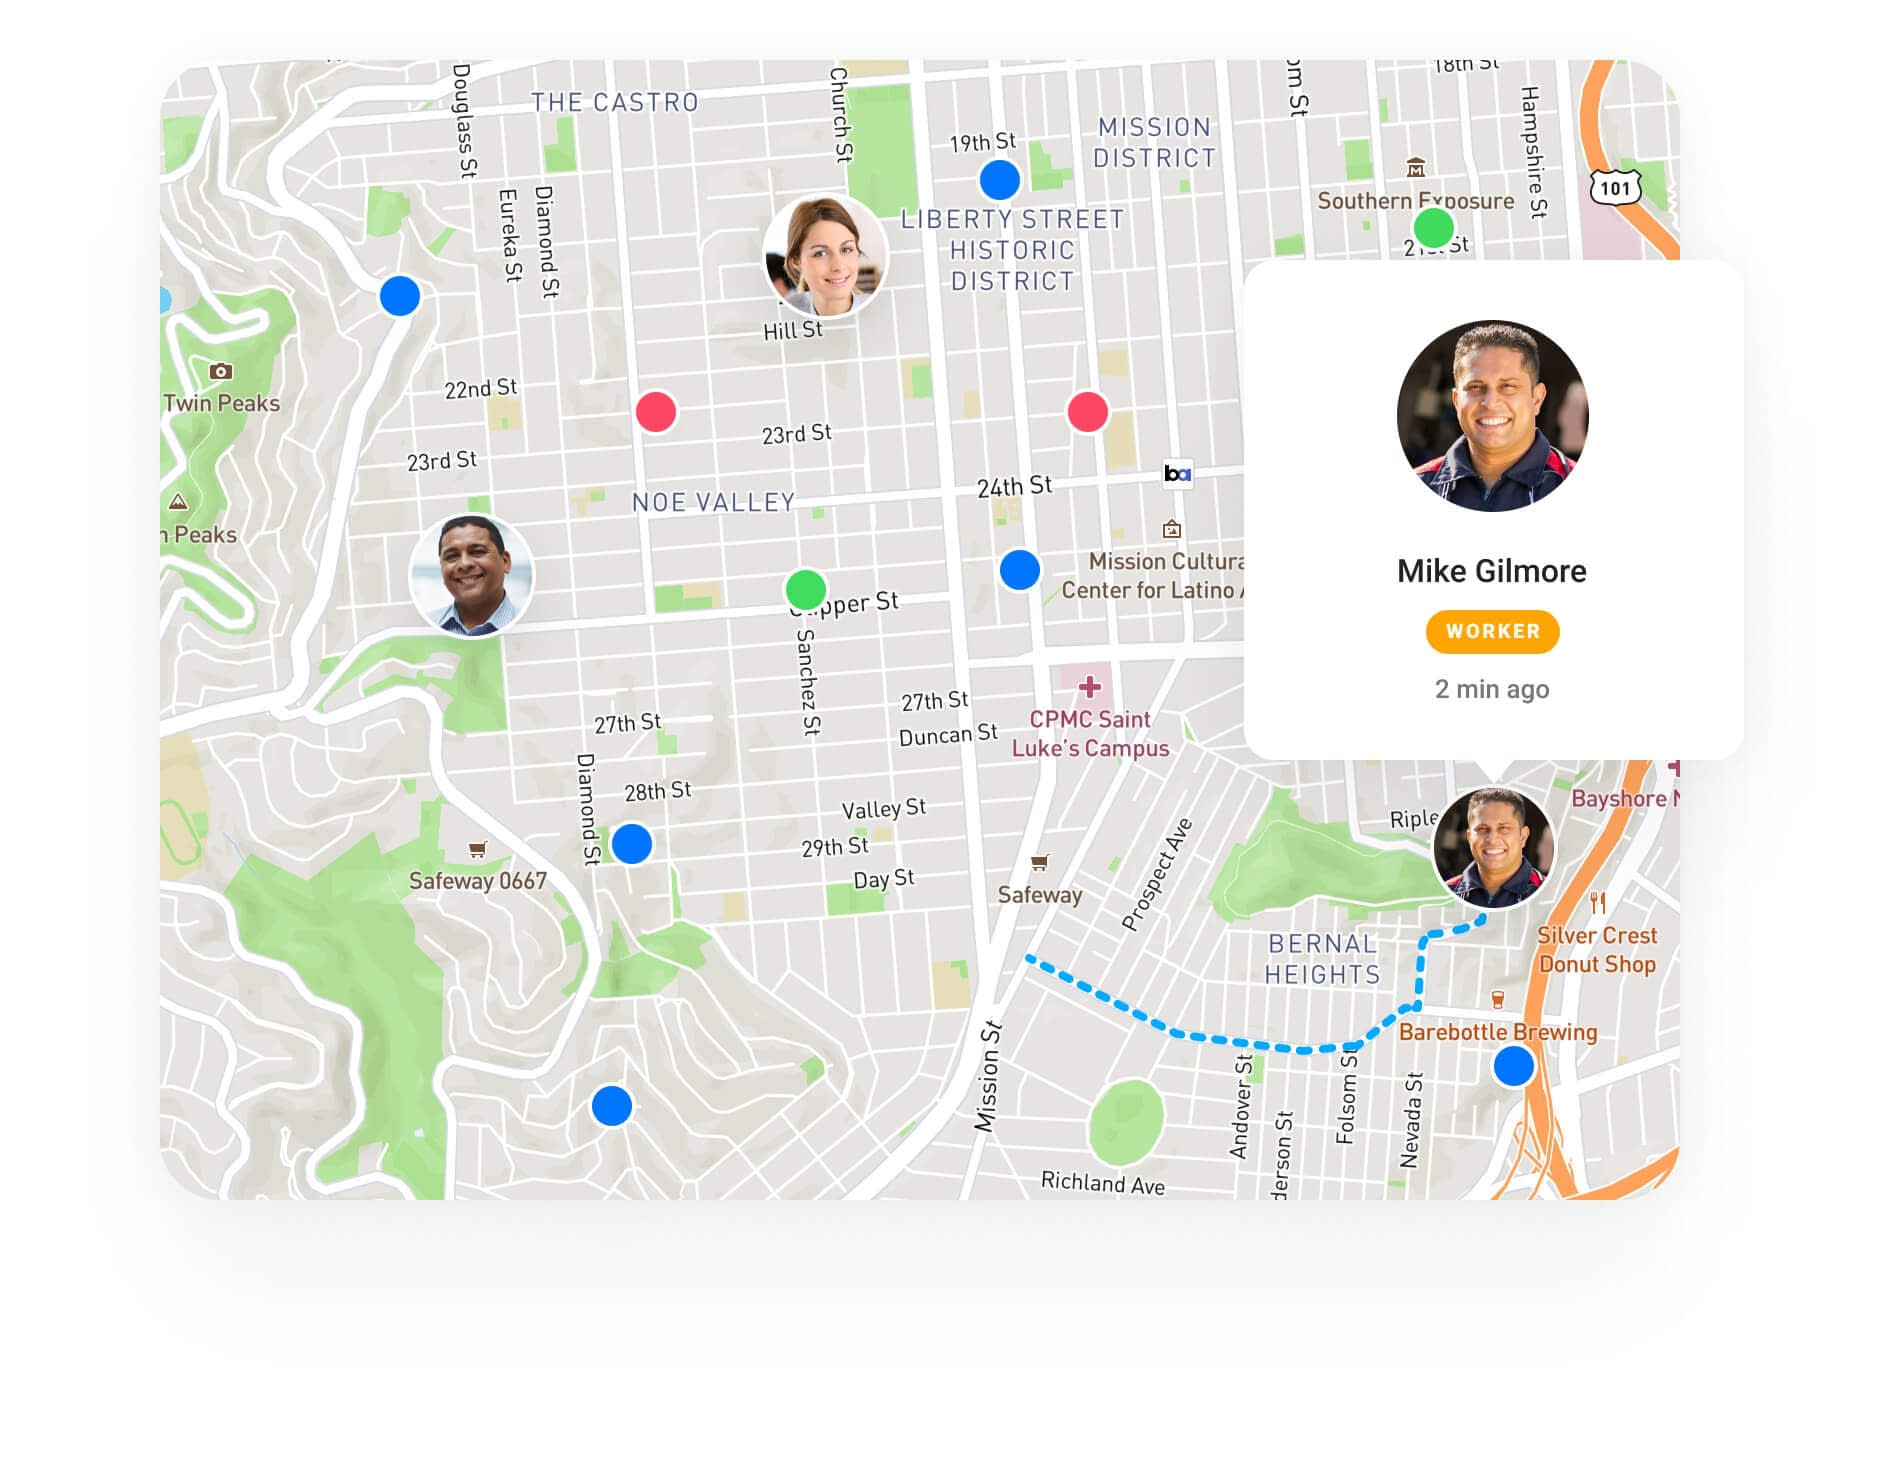 Track your team and fleet movements